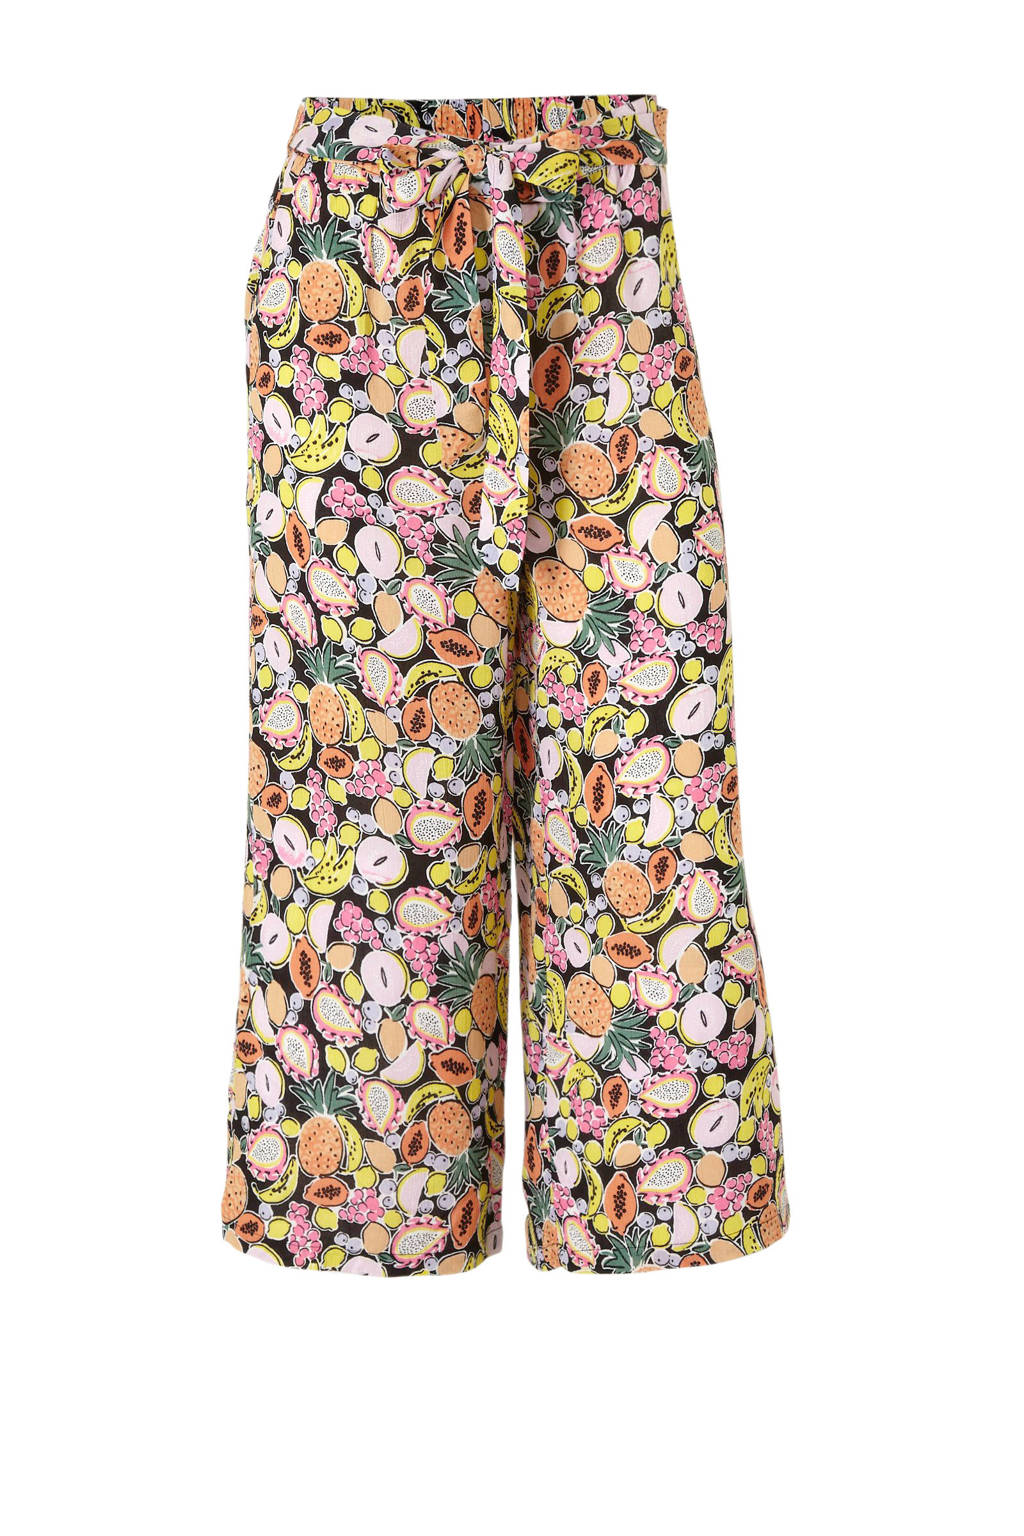 C&A Clockhouse high waist loose fit broek met all over print zwart/multi, Zwart/multi